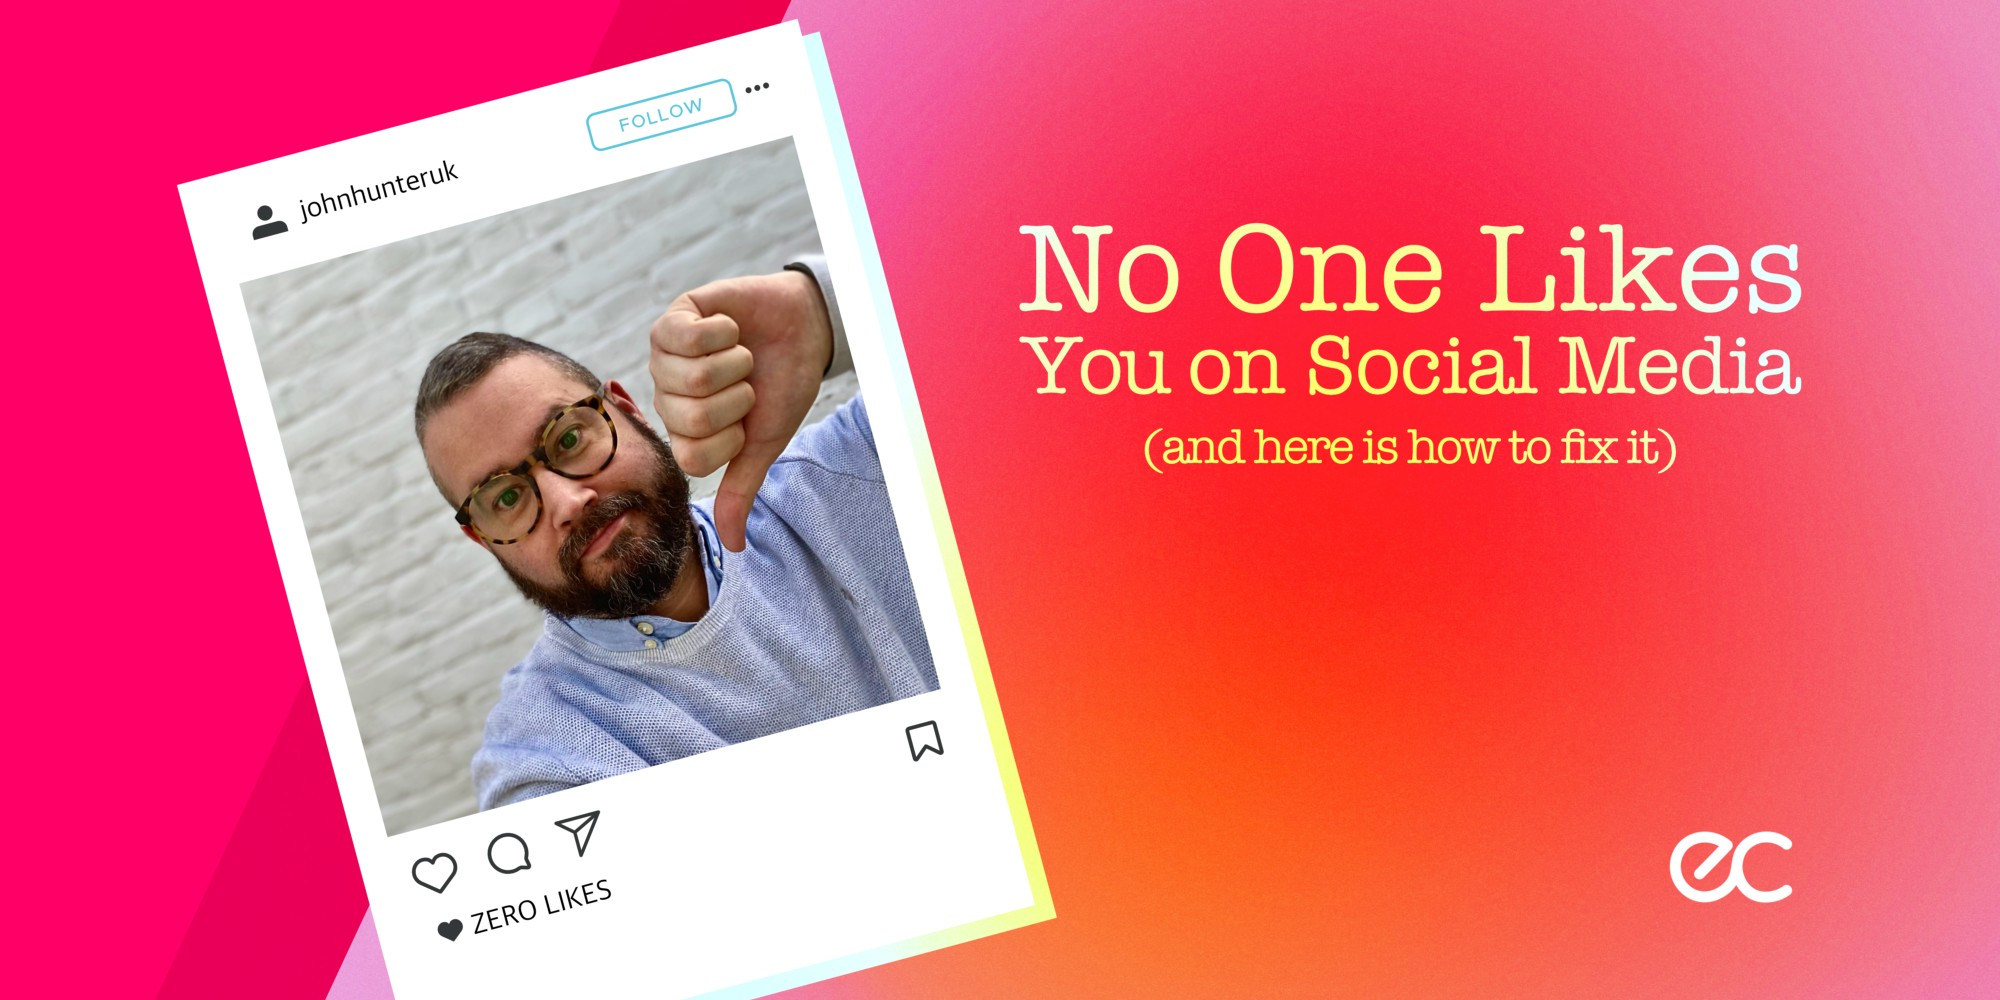 Header image for No One Likes Your Social Media including Instagram unliked graphic